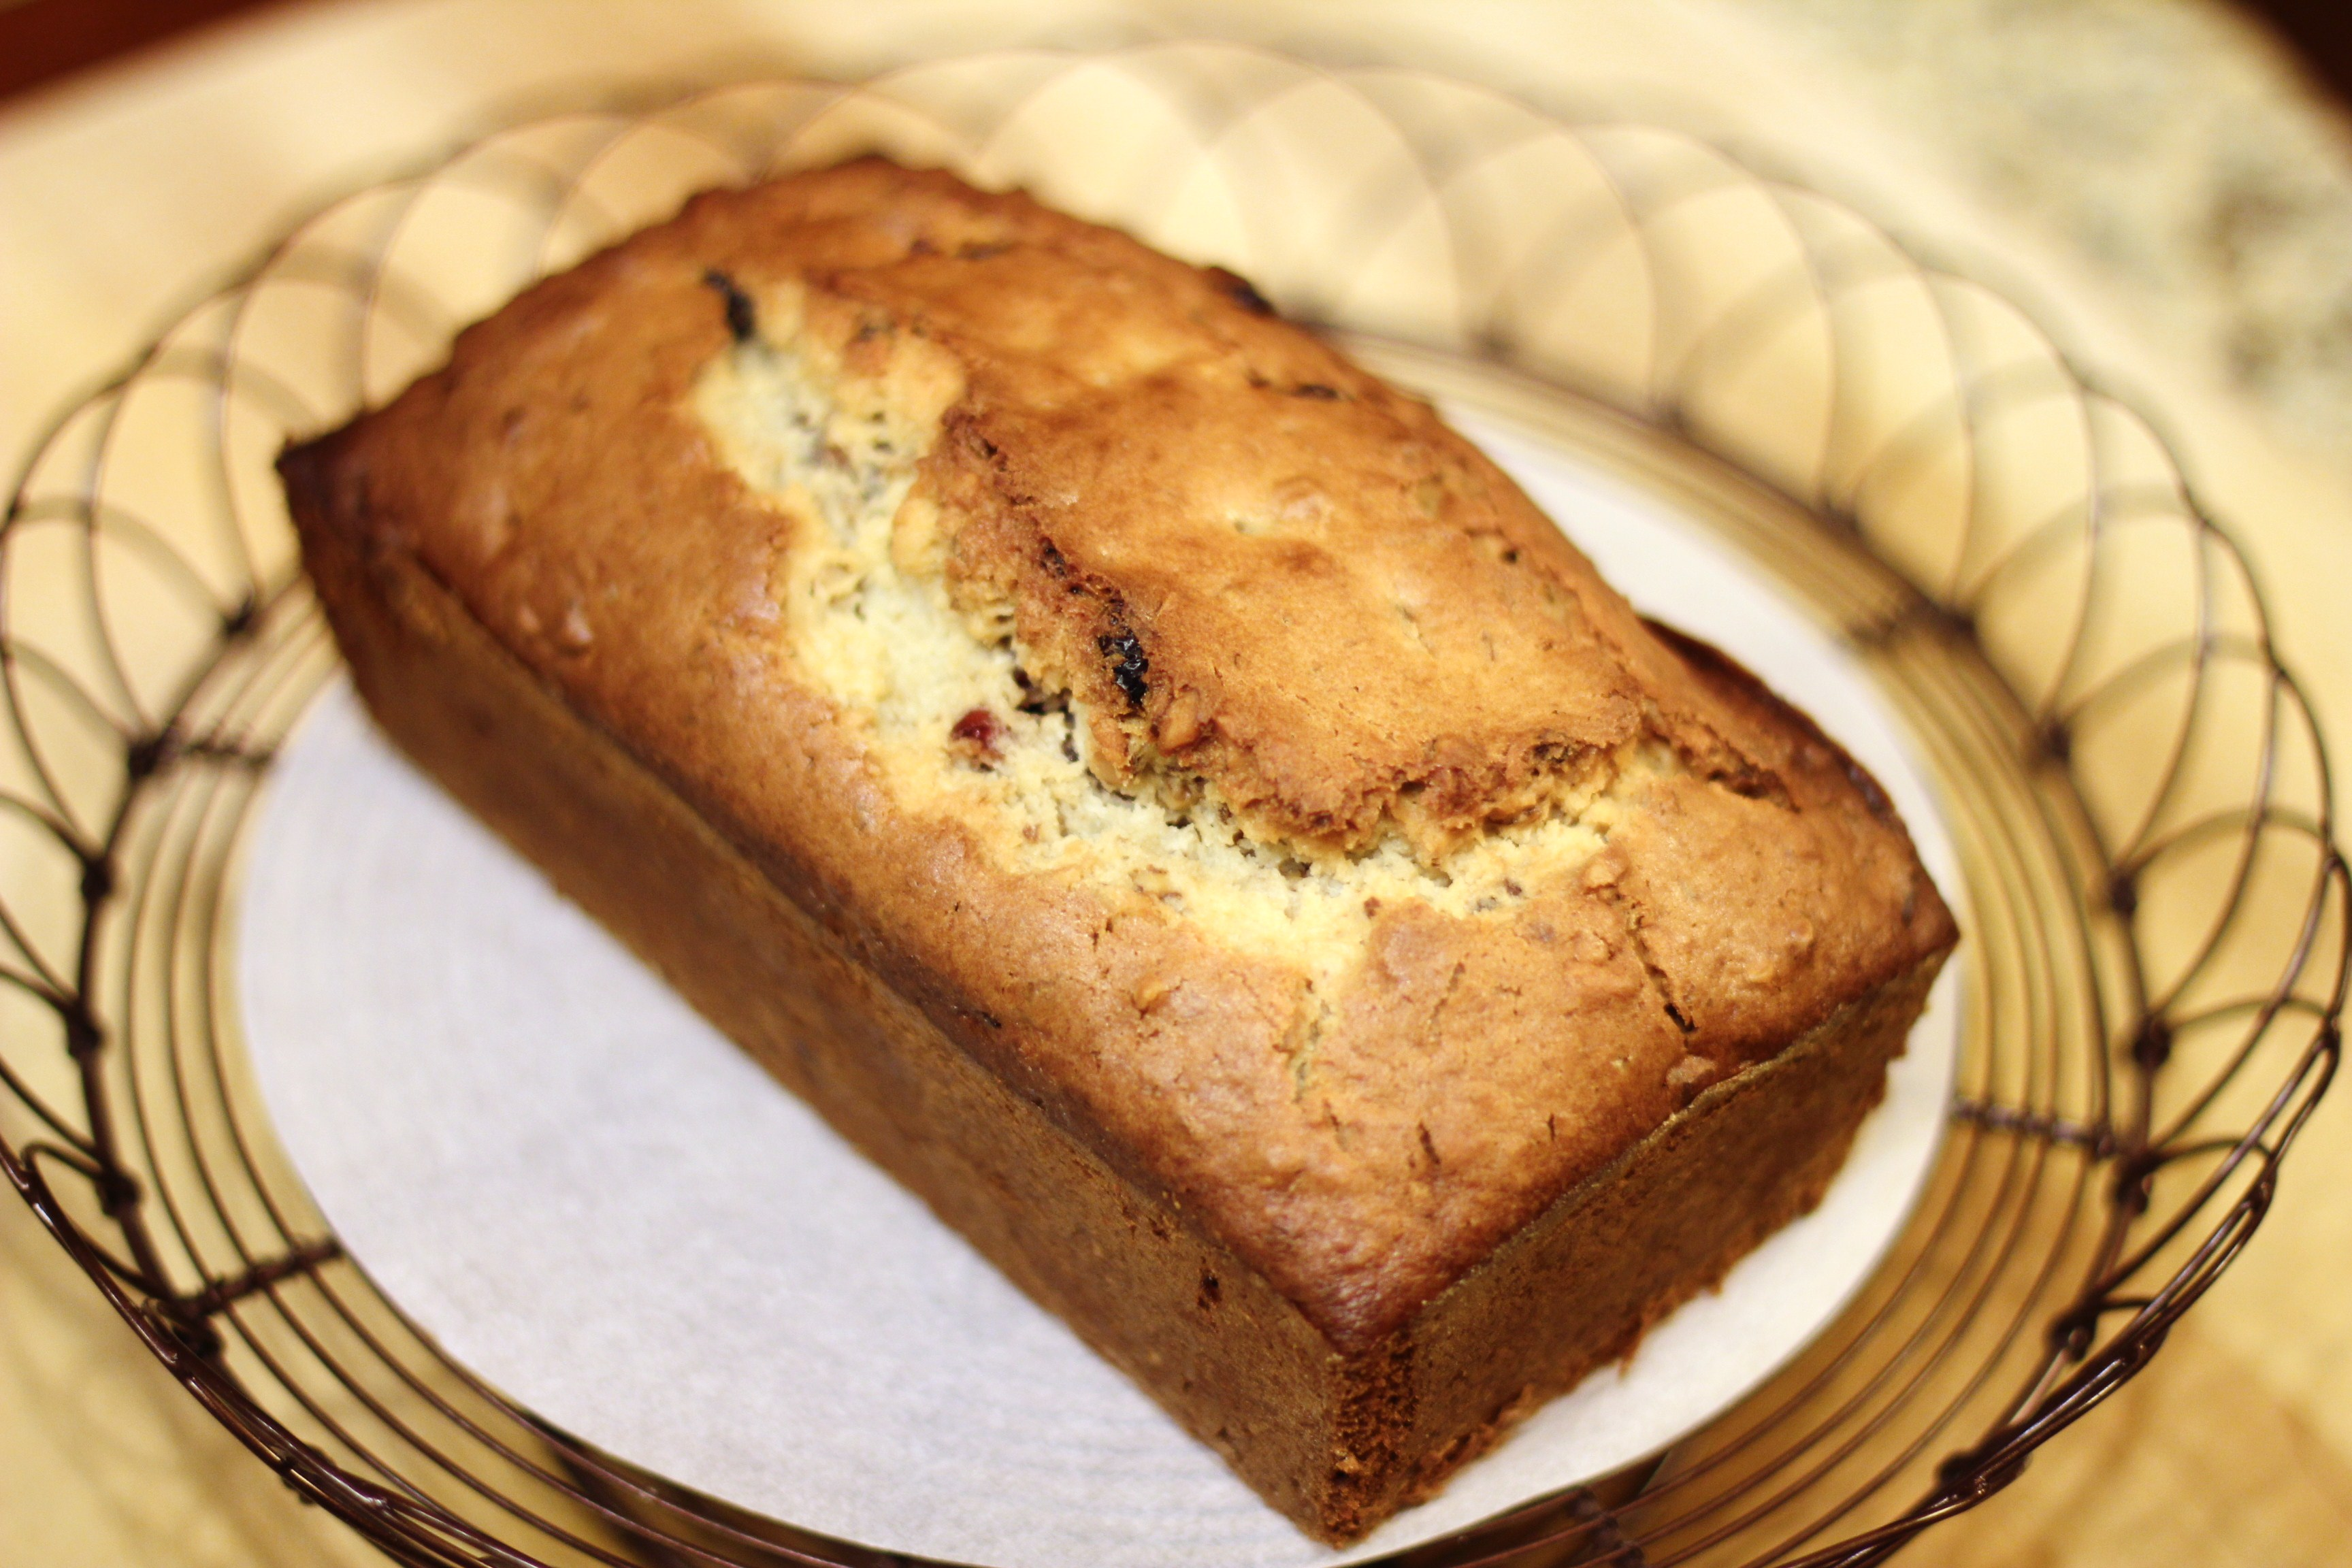 Recipe: Cranberry Walnut Bread